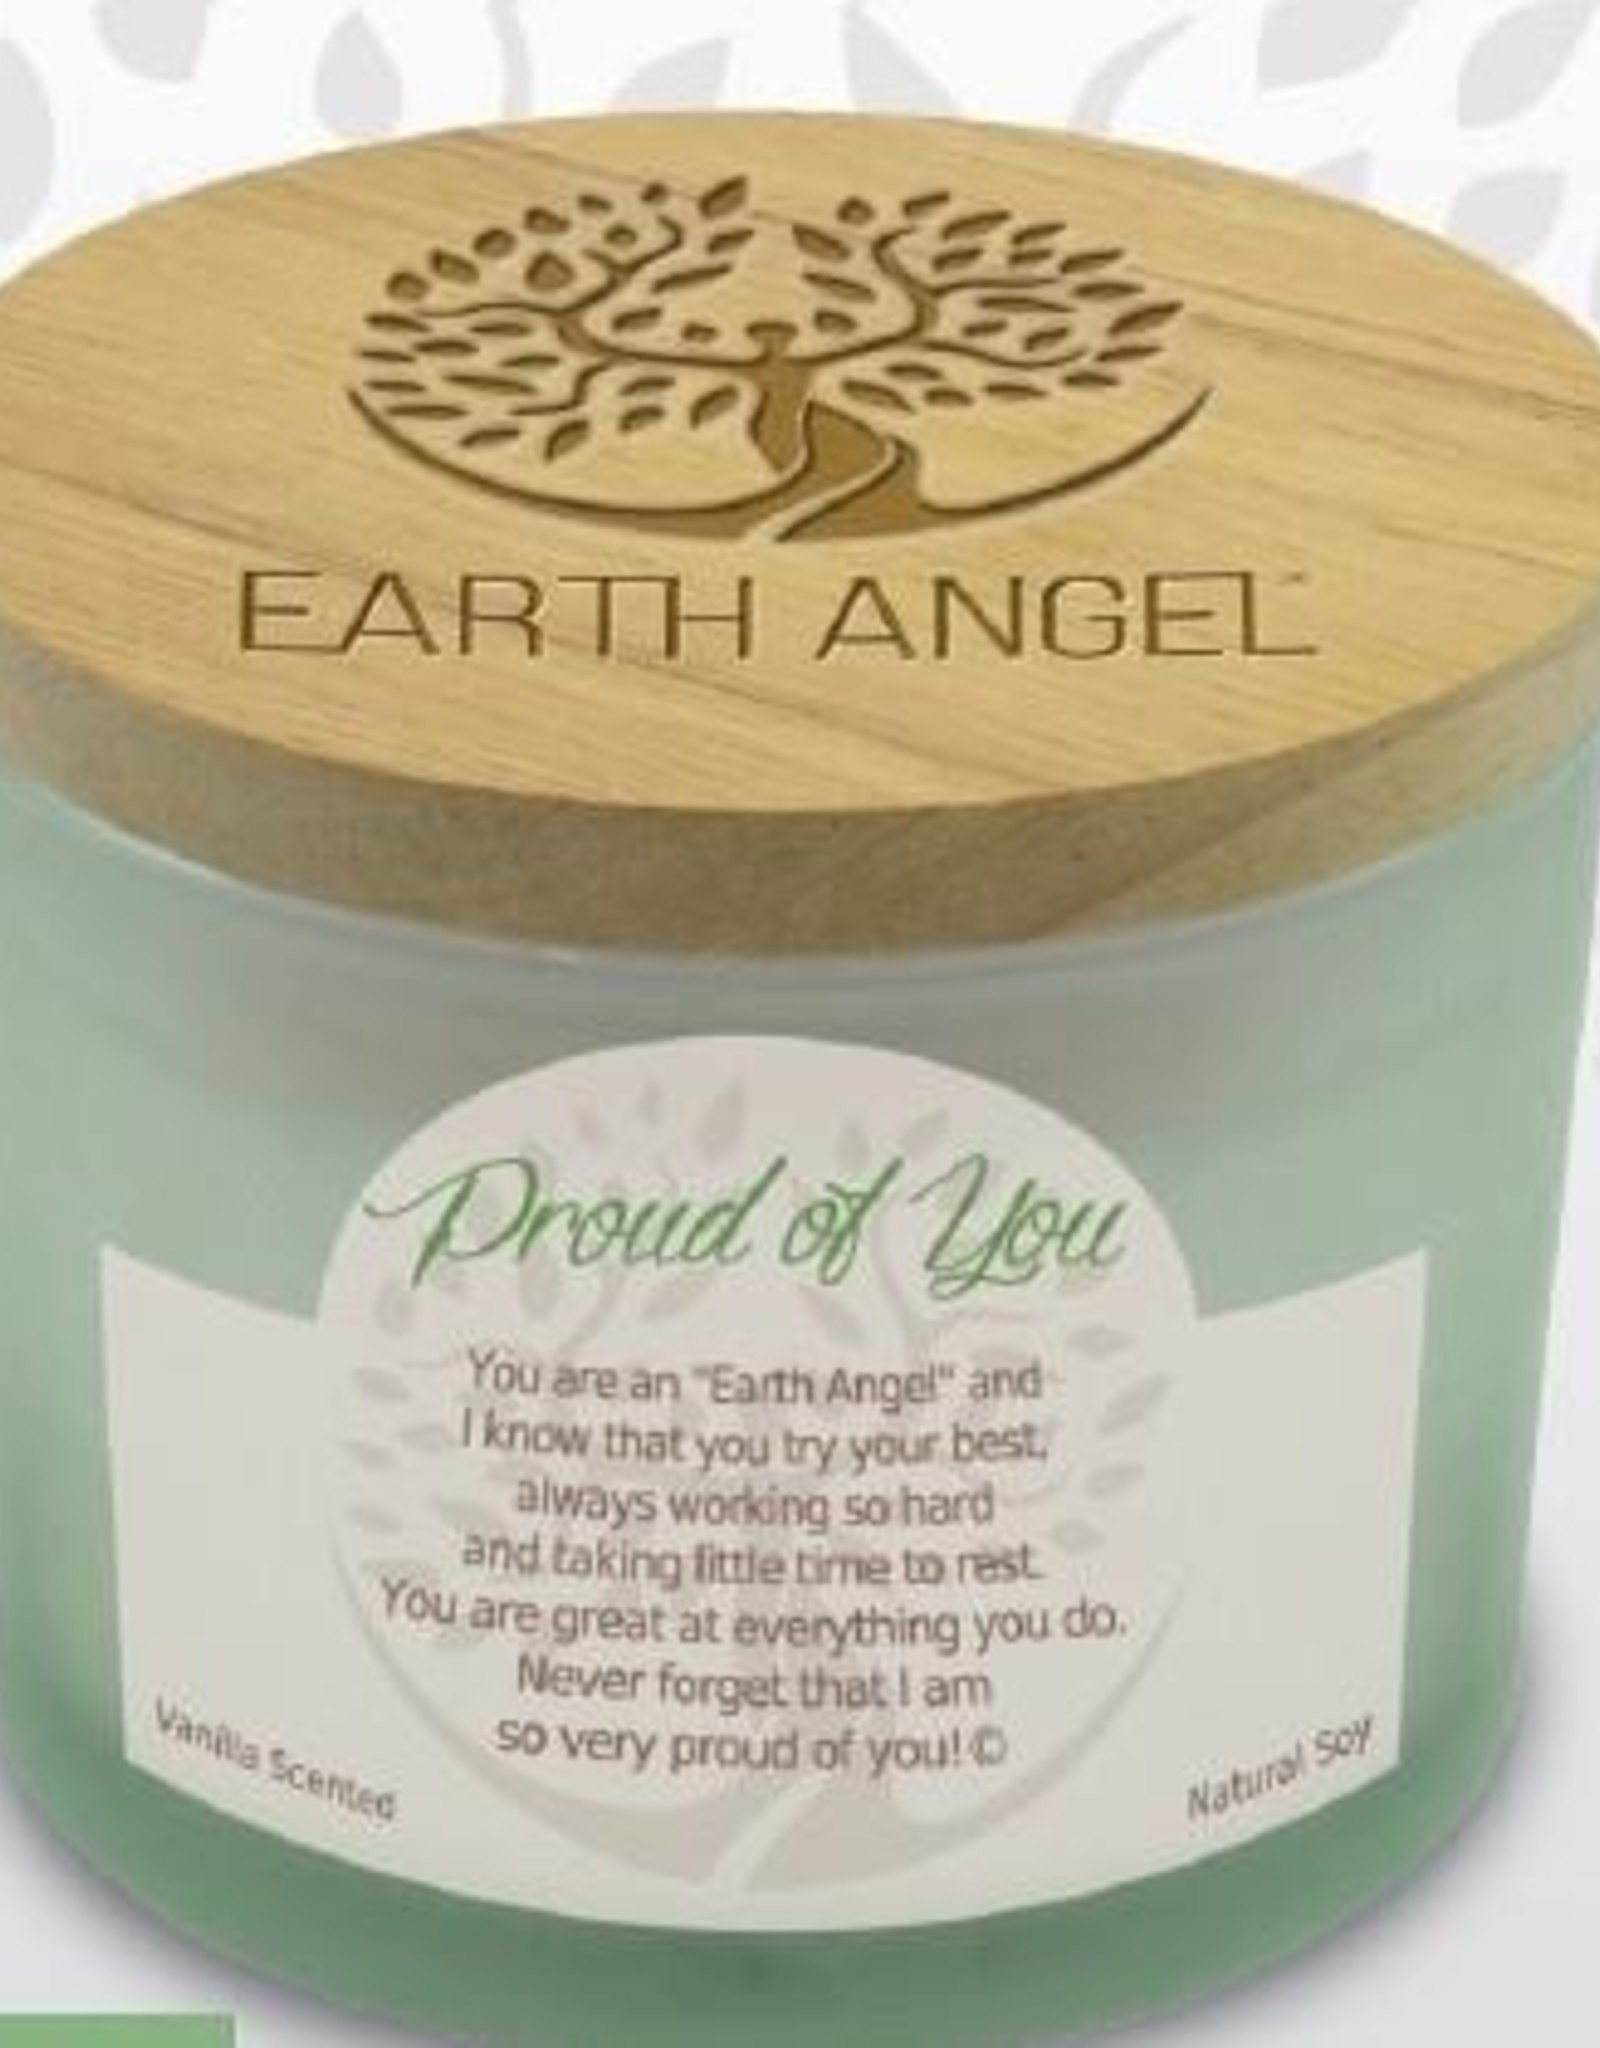 EARTH ANGEL Earth Angel Candle - Proud of You